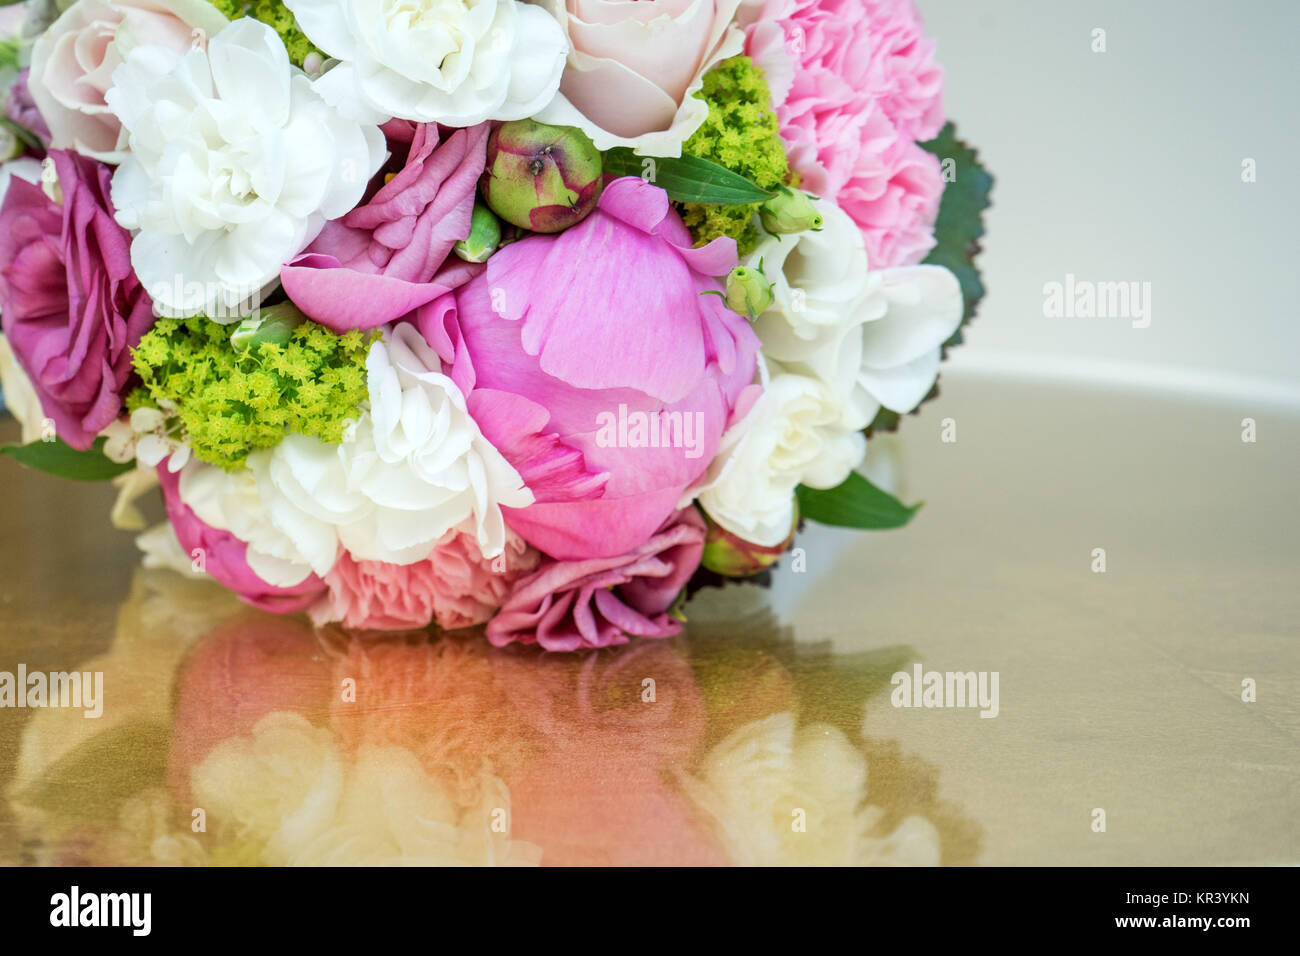 Bridal Bouquet With Pink And White Flowers On A Gold Tabletop Stock